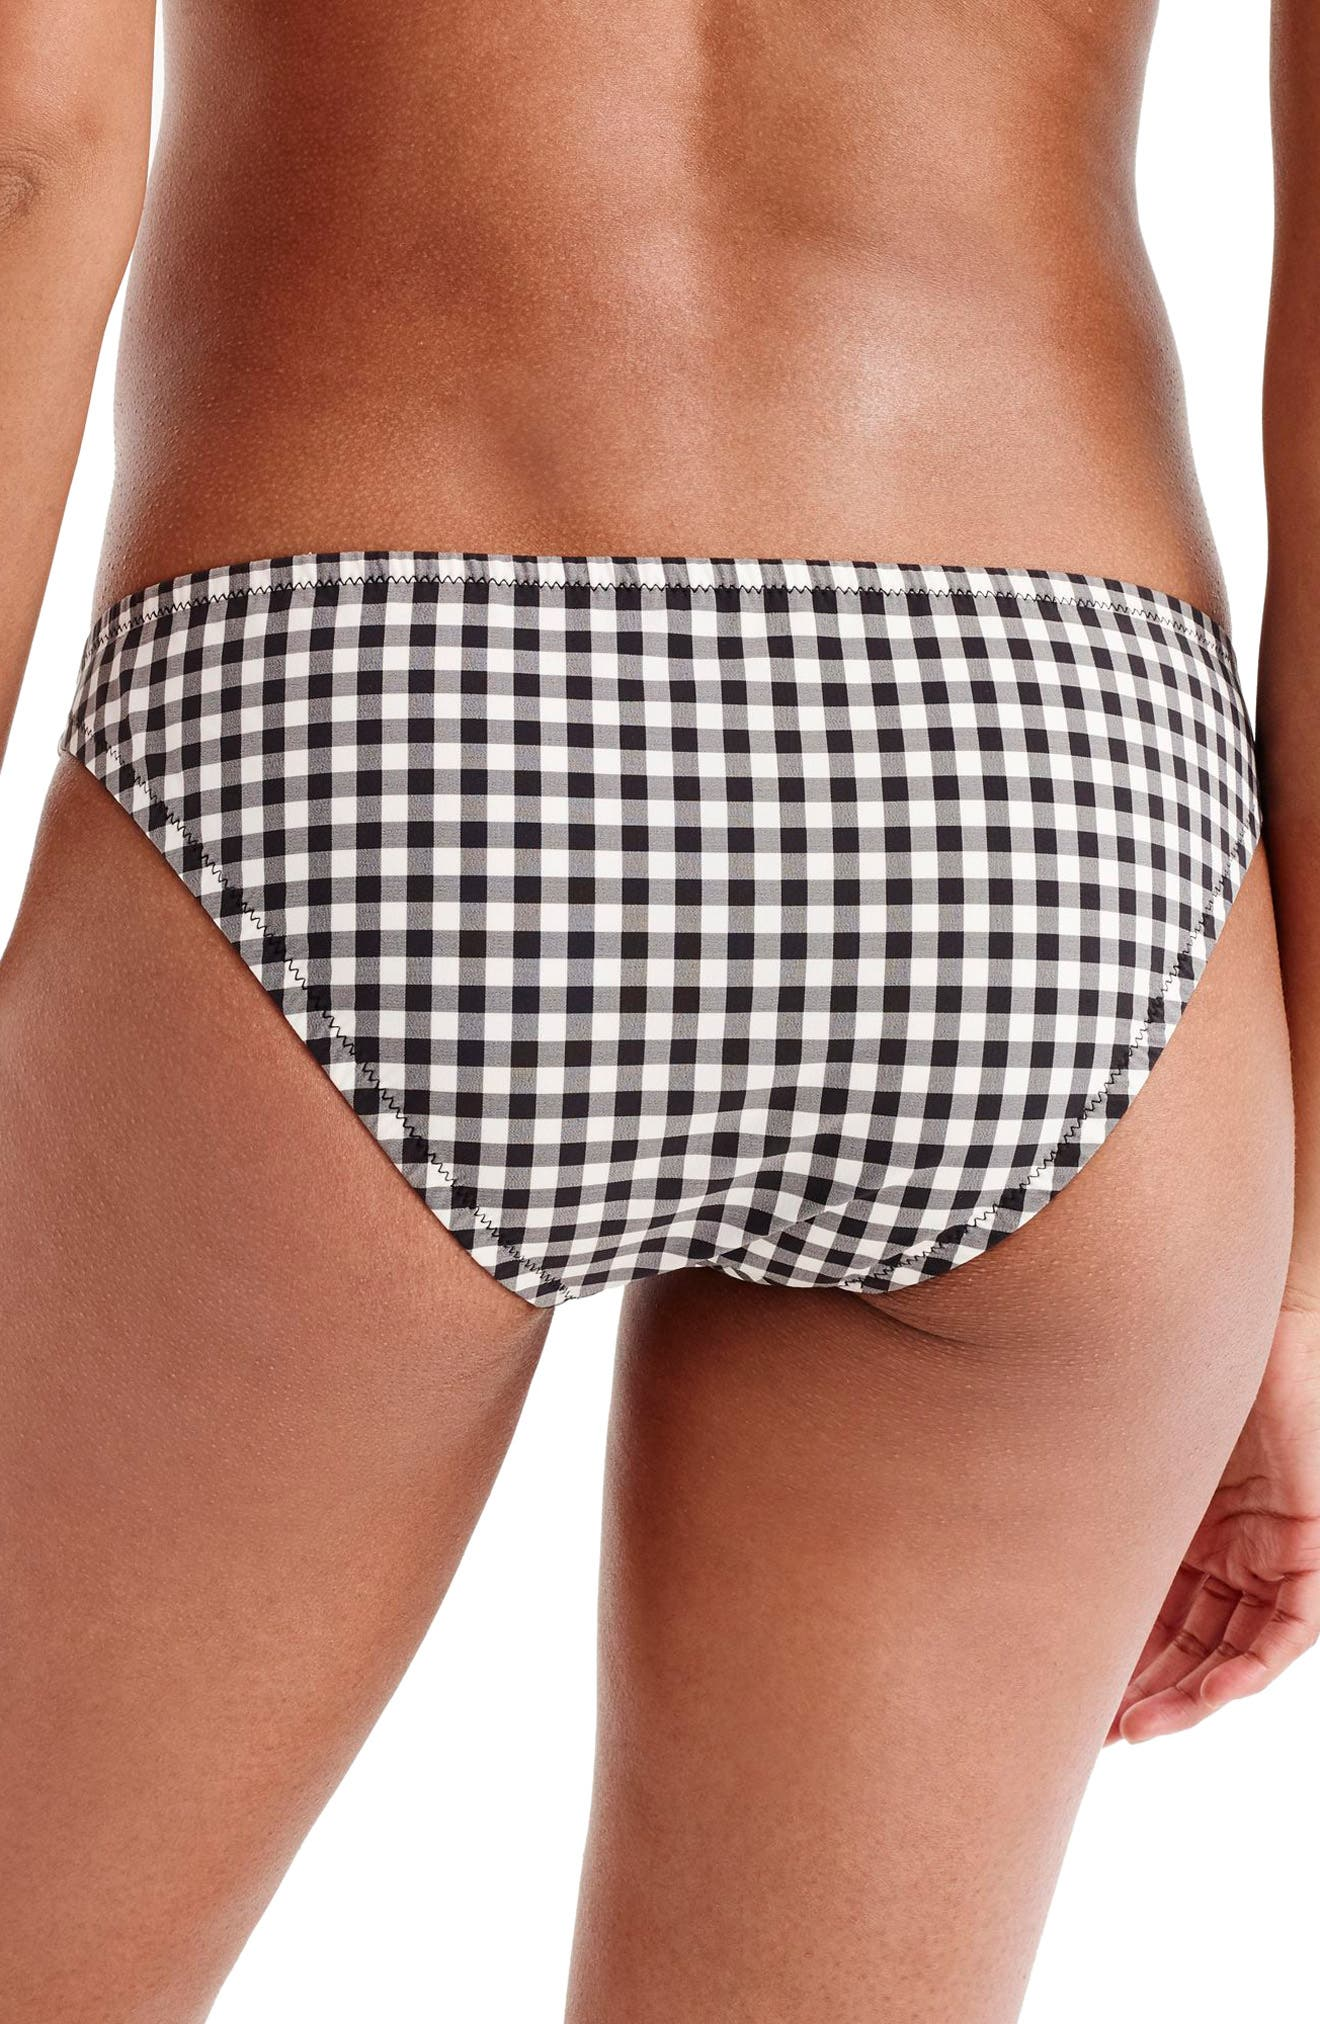 Cali Hipster Bikini Bottoms,                             Alternate thumbnail 2, color,                             BLACK/ IVORY